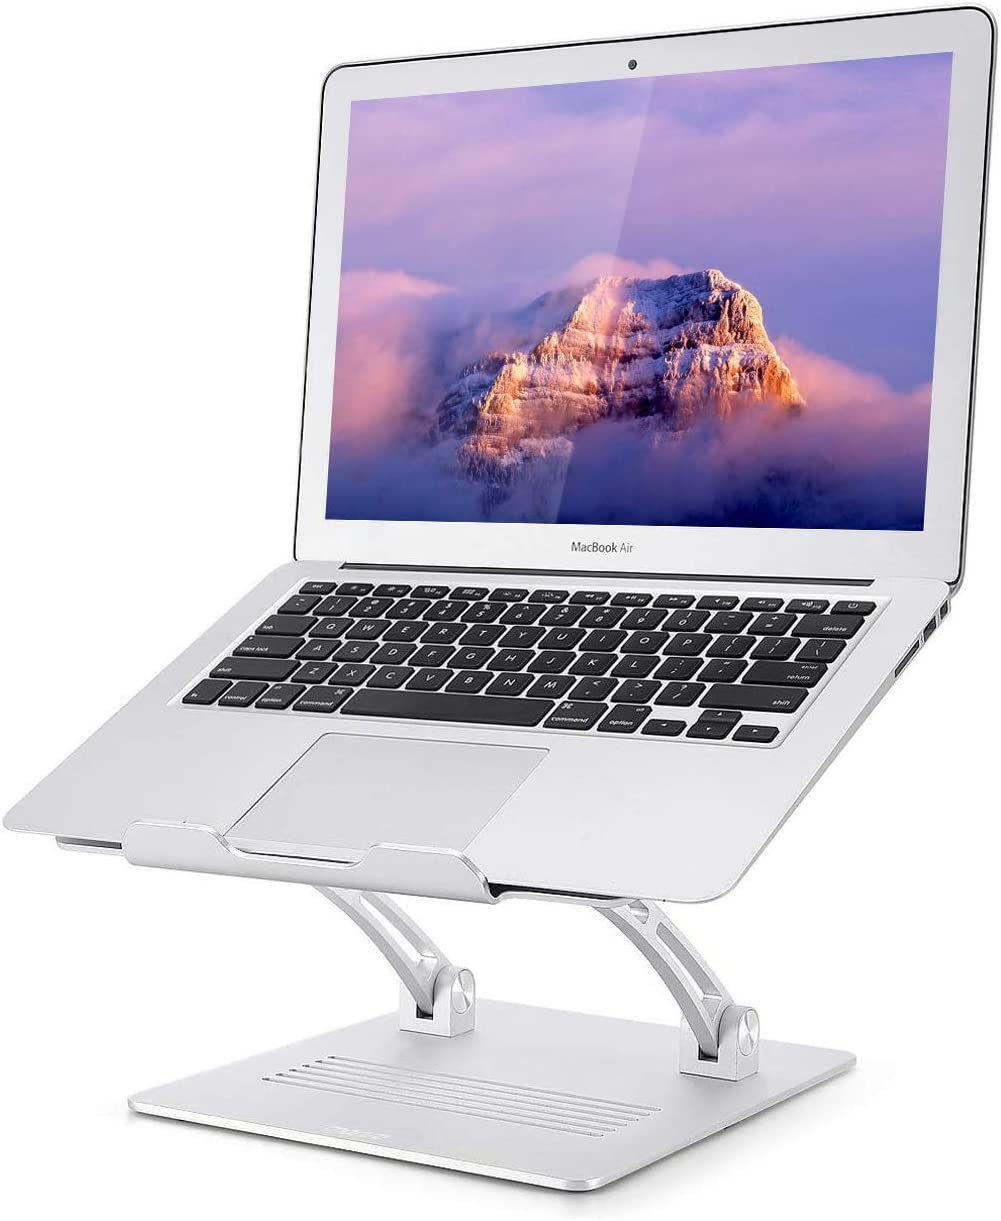 """Laptop Stand Ventilated Portable Ergonomic Notebook Riser, Multi-Angle Adjustable Portable Anti-Slip Mount with MacBook, Air, Pro, Dell XPS, Samsung, Alienware All Laptops 10-17.3"""" - Silver…"""